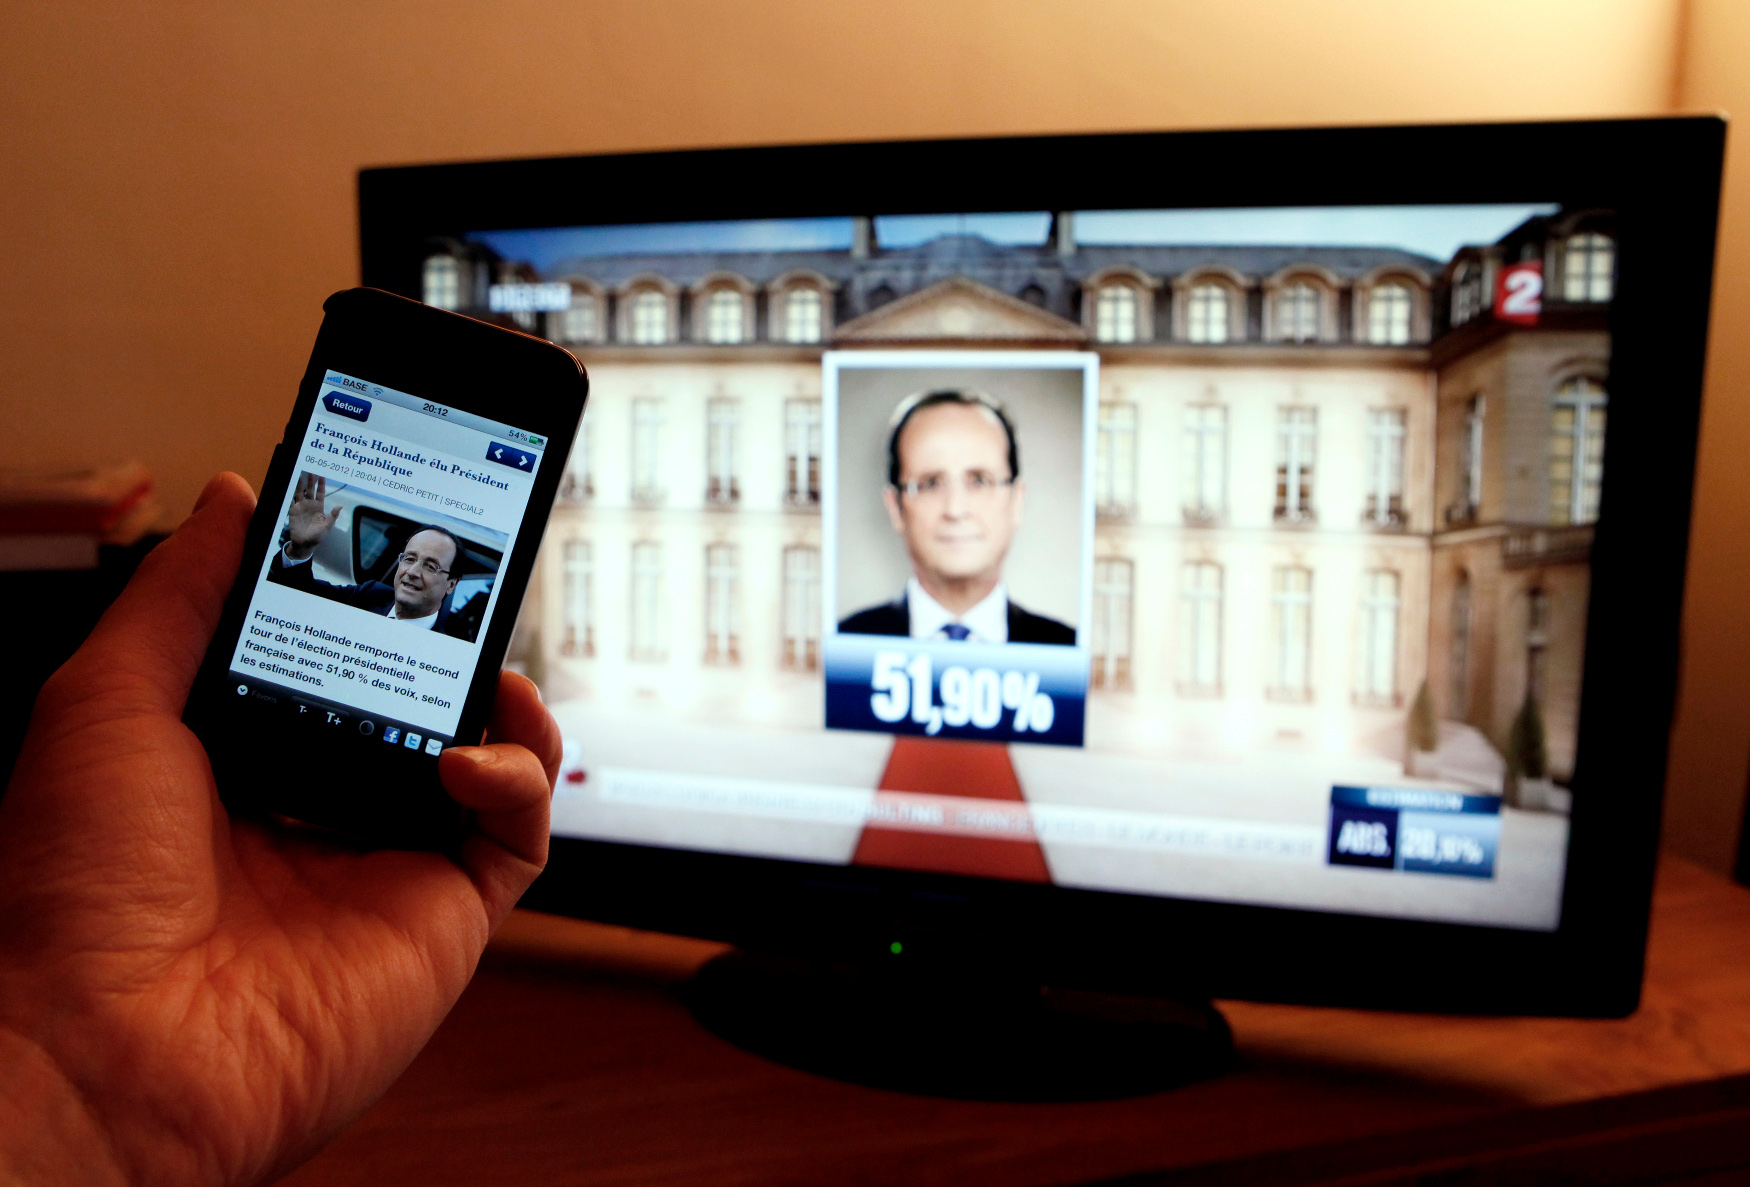 France national television France 2 announces France's Socialist party candidate Francois Hollande as the winner of the second round 2012 French presidential election in this photo illustration  taken in Wavre, May 6, 2012. France voted in elections on Sunday and Francois Hollande becomes the nation's first Socialist president  in 17 years, early estimations said. REUTERS/Sebastien Pirlet    (BELGIUM - Tags: POLITICS ELECTIONS) - PM1E8561LF701